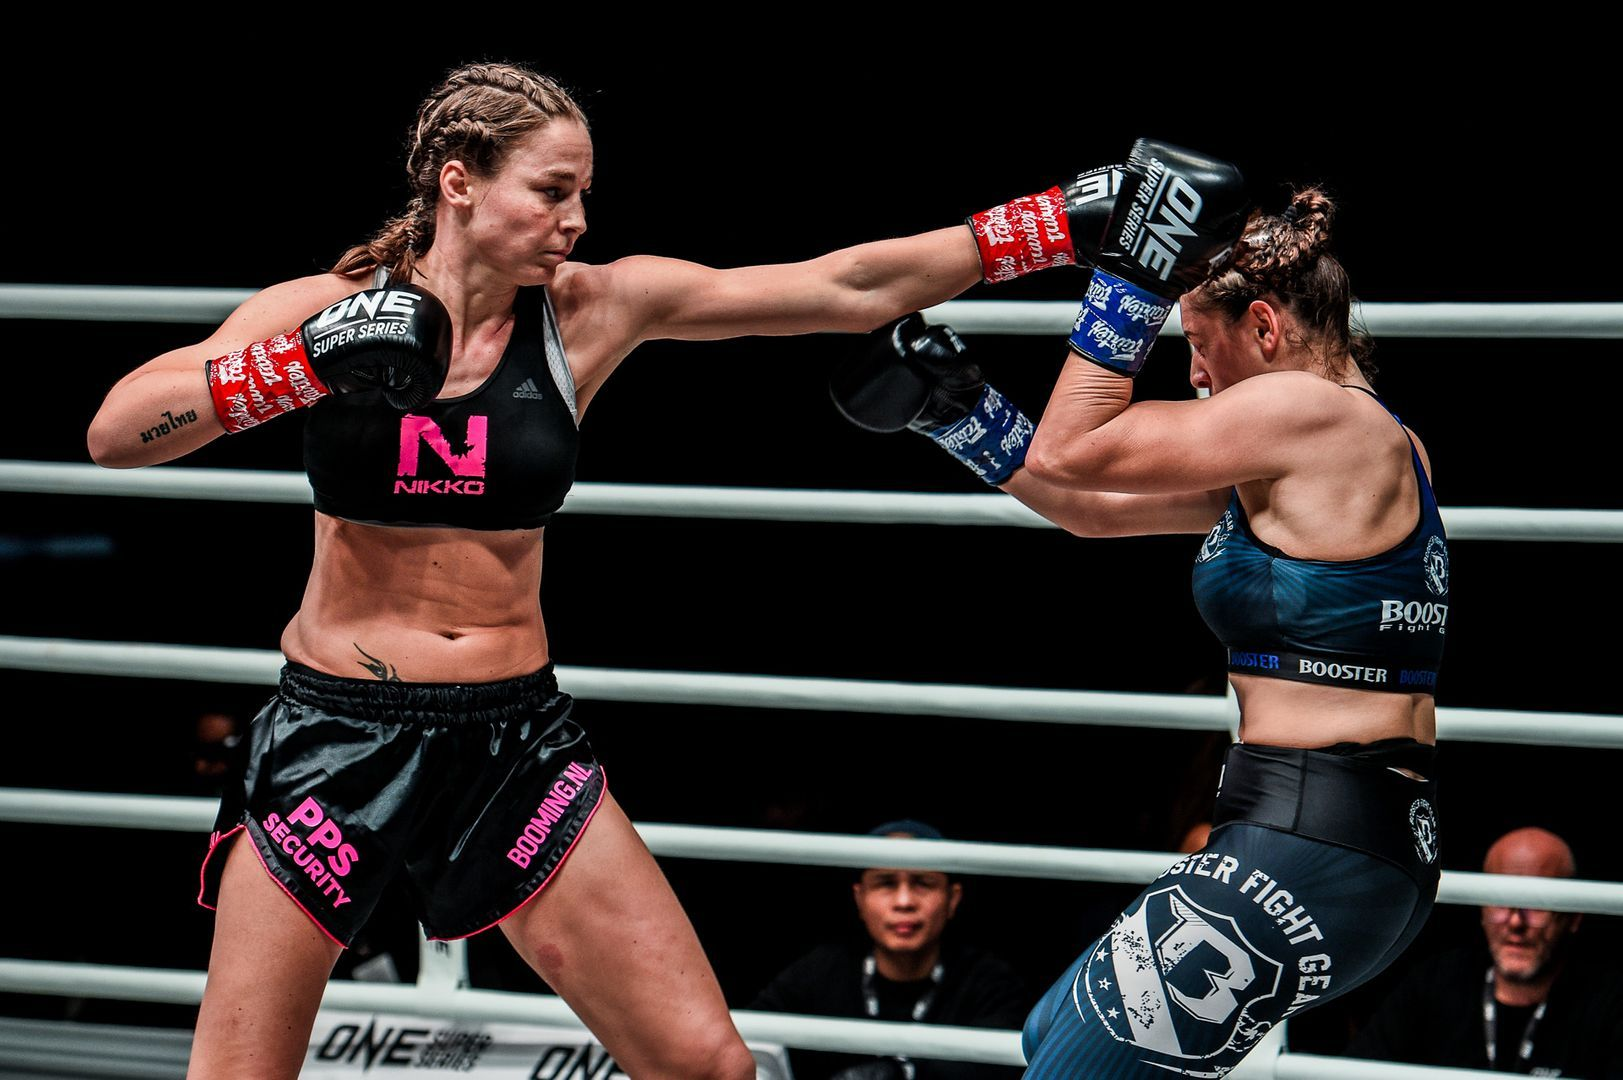 Kickboxing and Muay Thai World Champion Jorina Baars